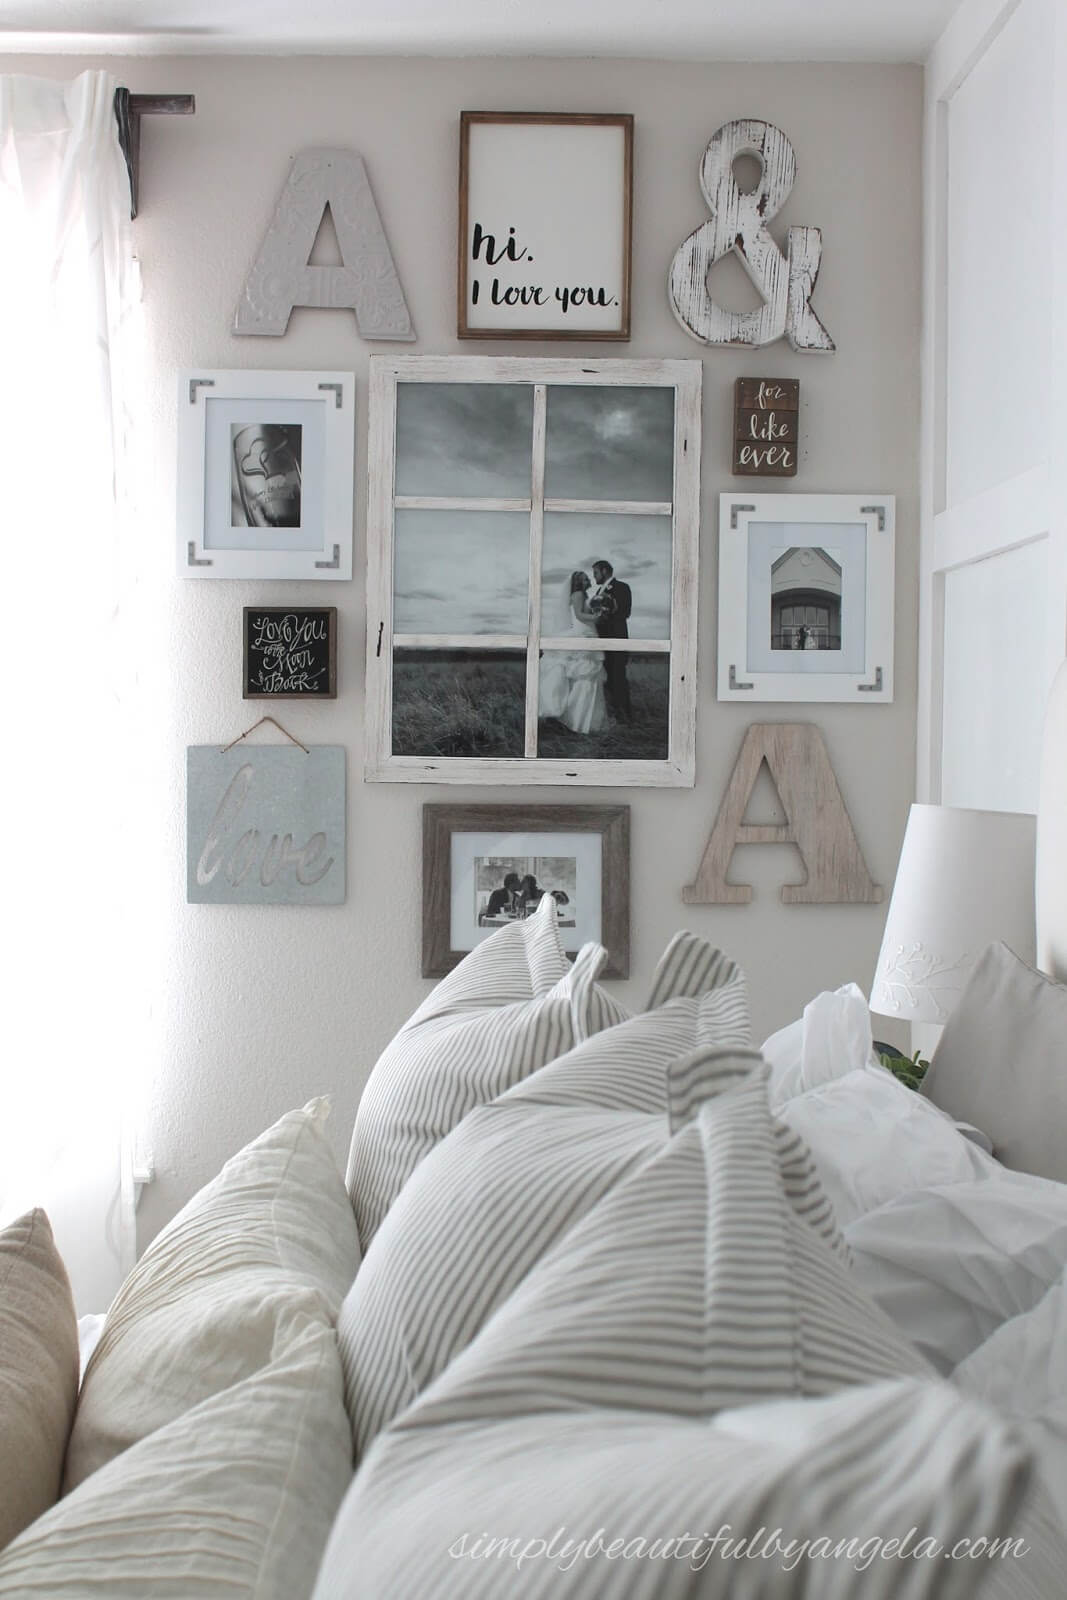 Bedroom Wall Decor Collection